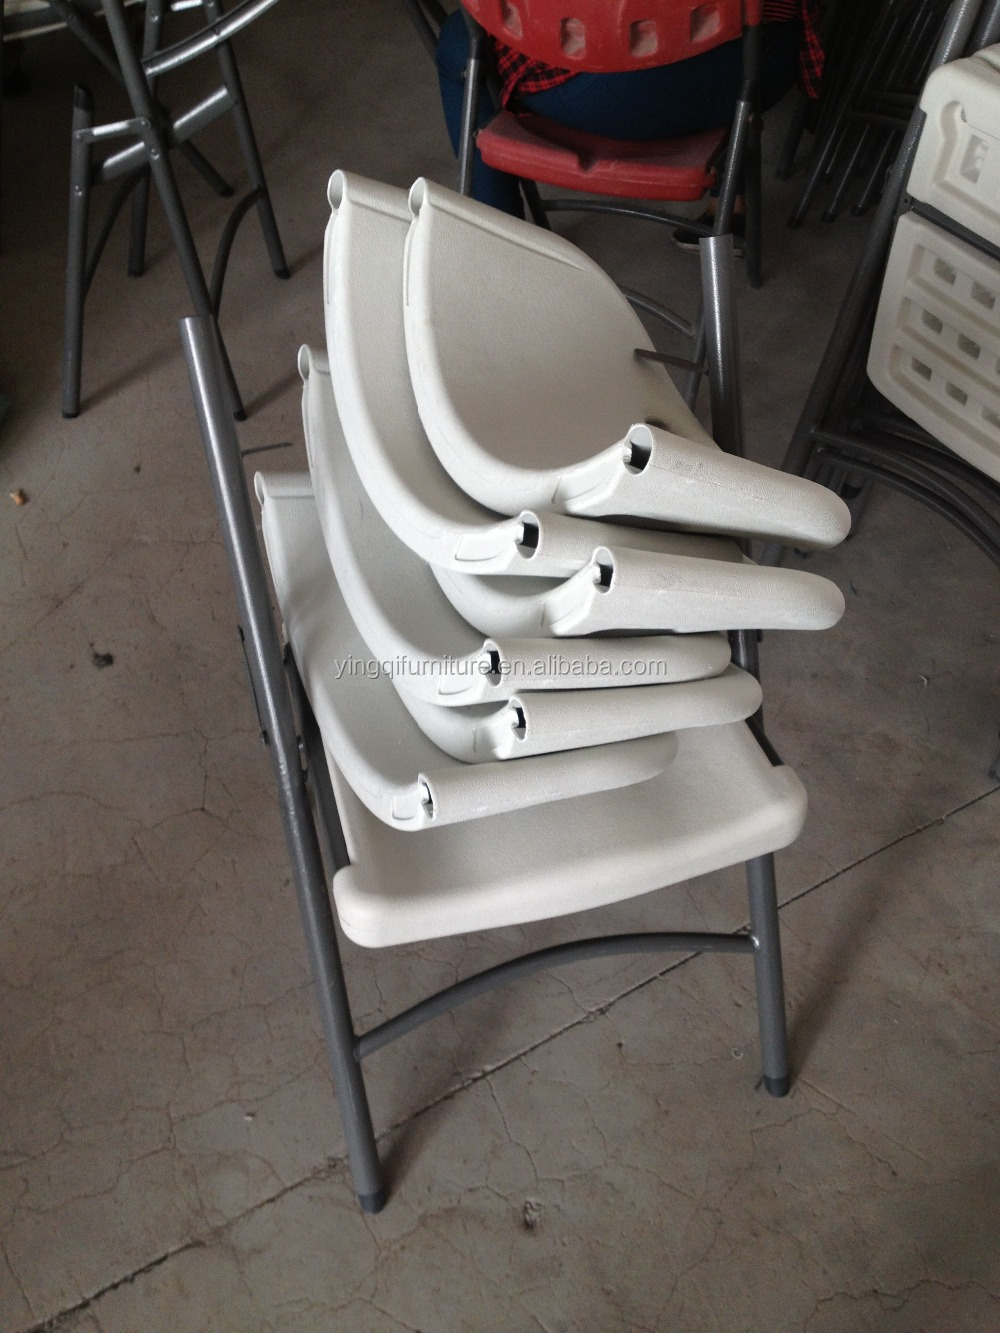 Wholesale Blow Molded Plastic Folding Chair For Outdoor